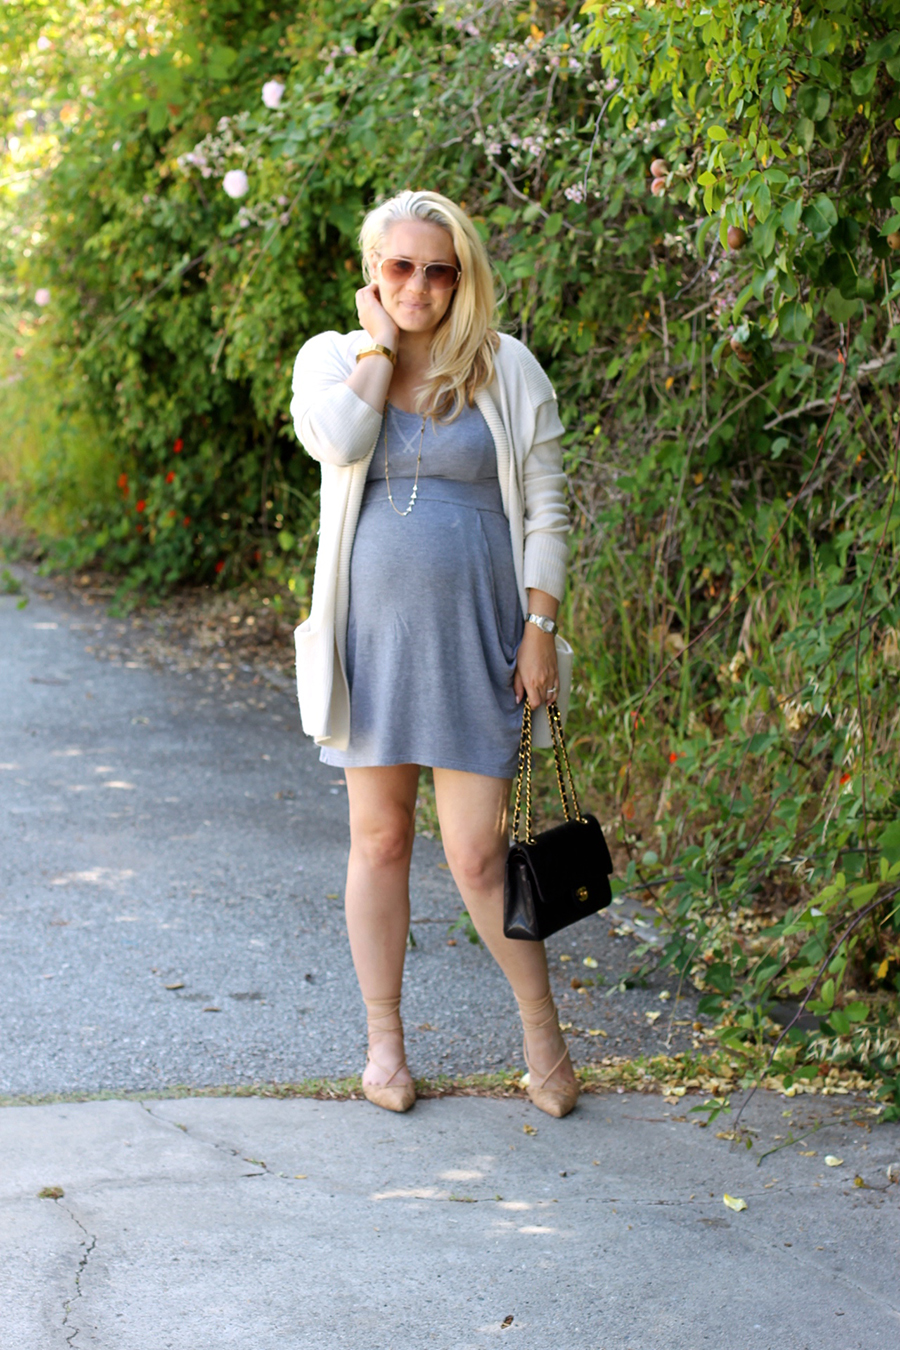 Grey Jersey Mini Dress-Maternity Style-Outfit Inspiration-Pregnancy Style-Have Need Want 5